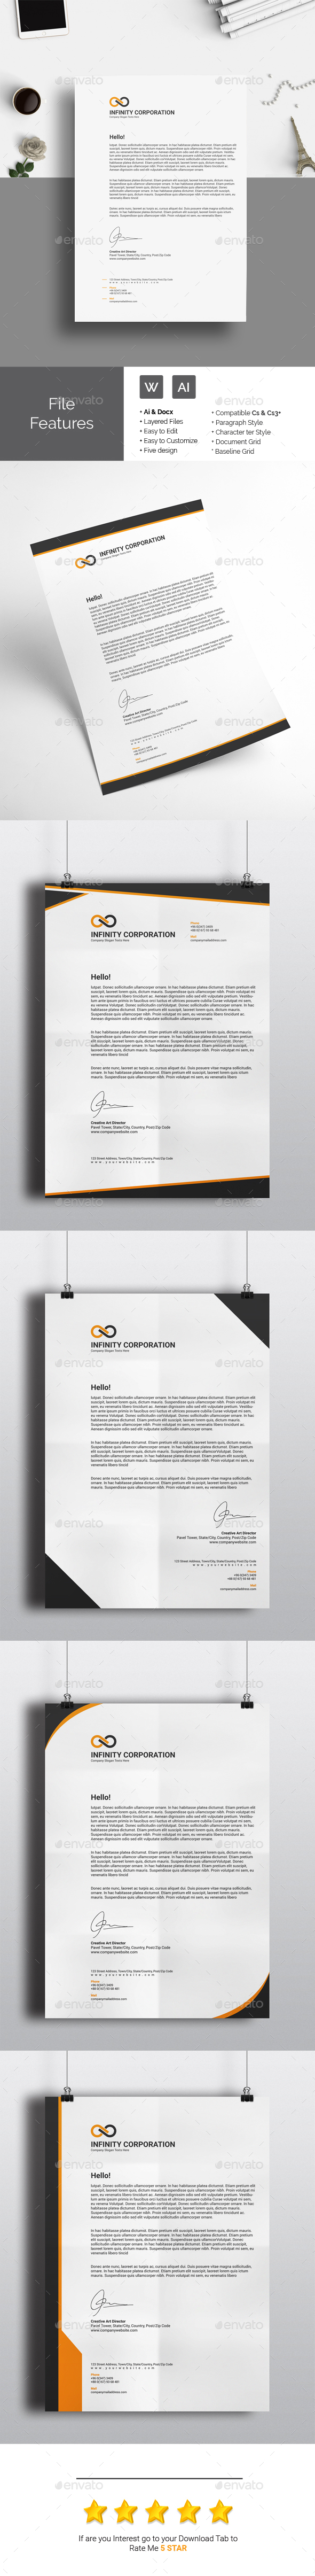 Ai 5 in 1 letterhead template only available here http ai 5 in 1 letterhead template only available here httpgraphicriver spiritdancerdesigns Choice Image